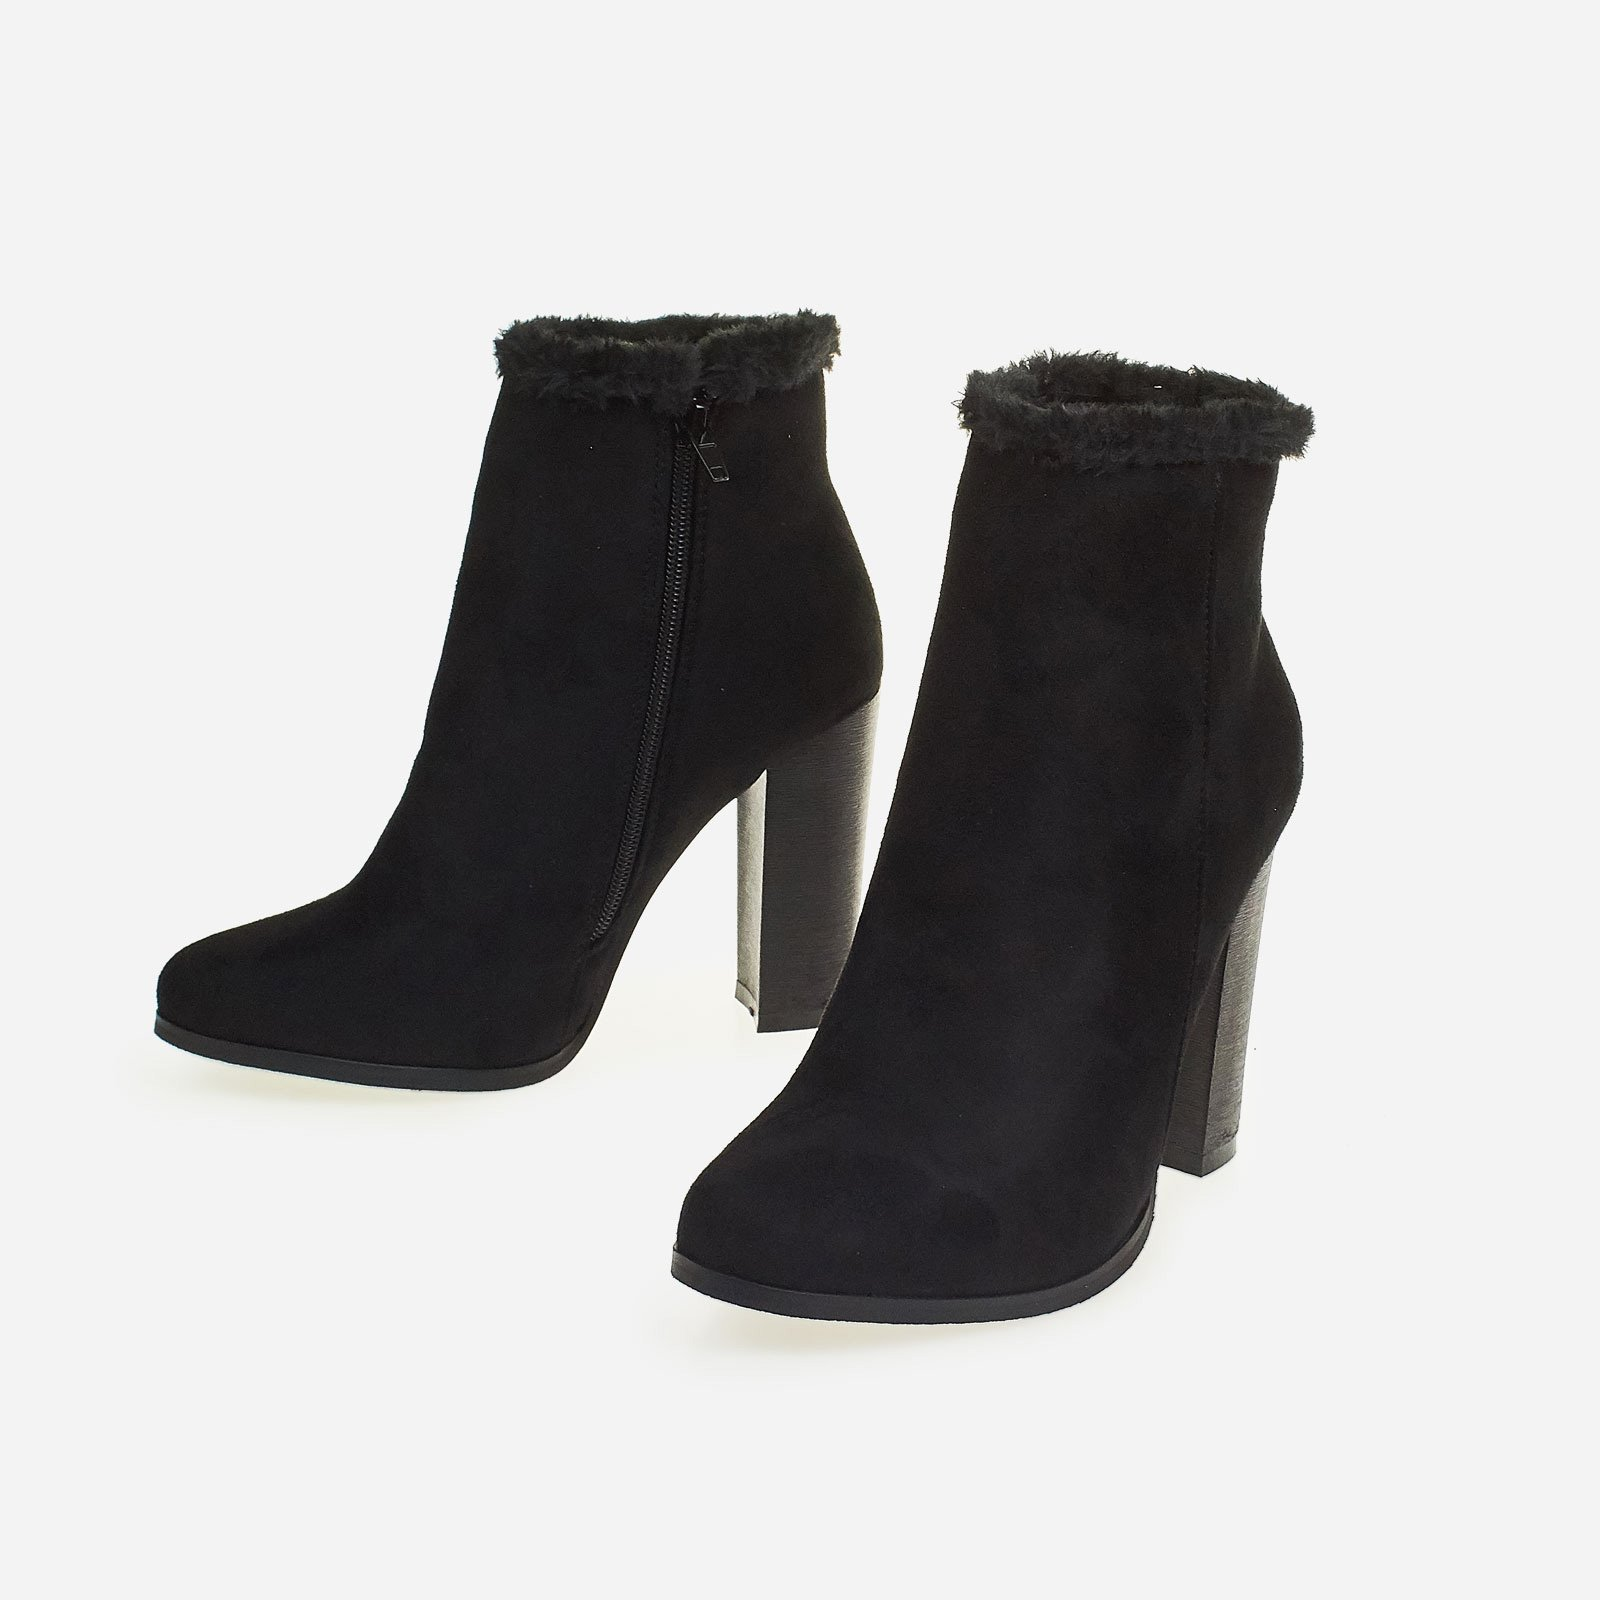 Adison Faux Fur Trim Block Heel Ankle Boot In Black Faux Suede